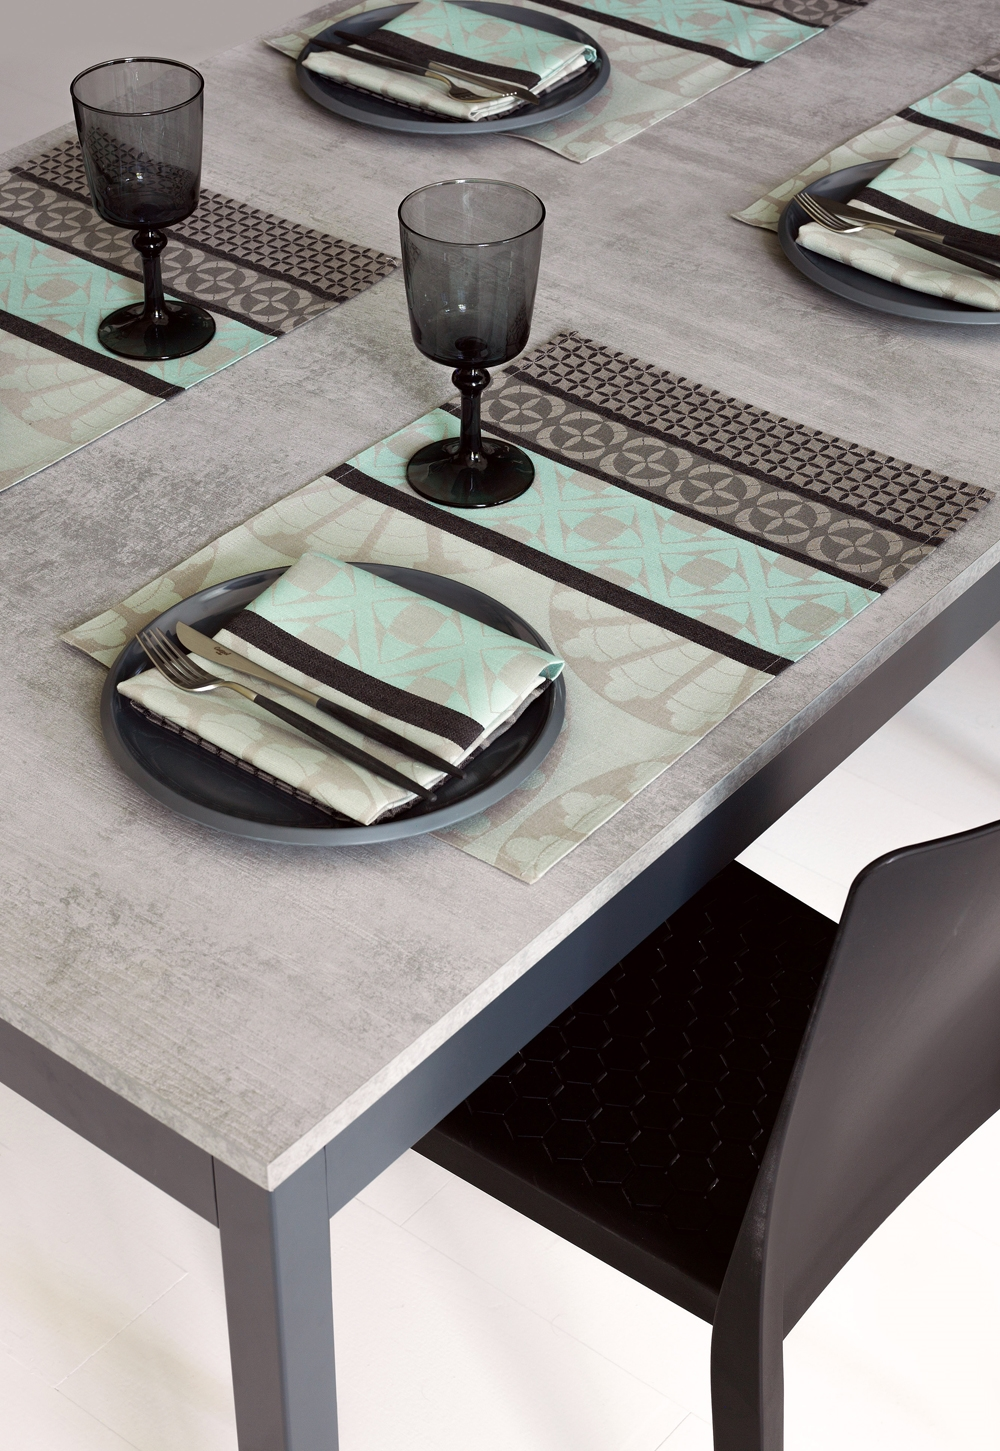 le jacquard francais bilbao enduite table linens. Black Bedroom Furniture Sets. Home Design Ideas